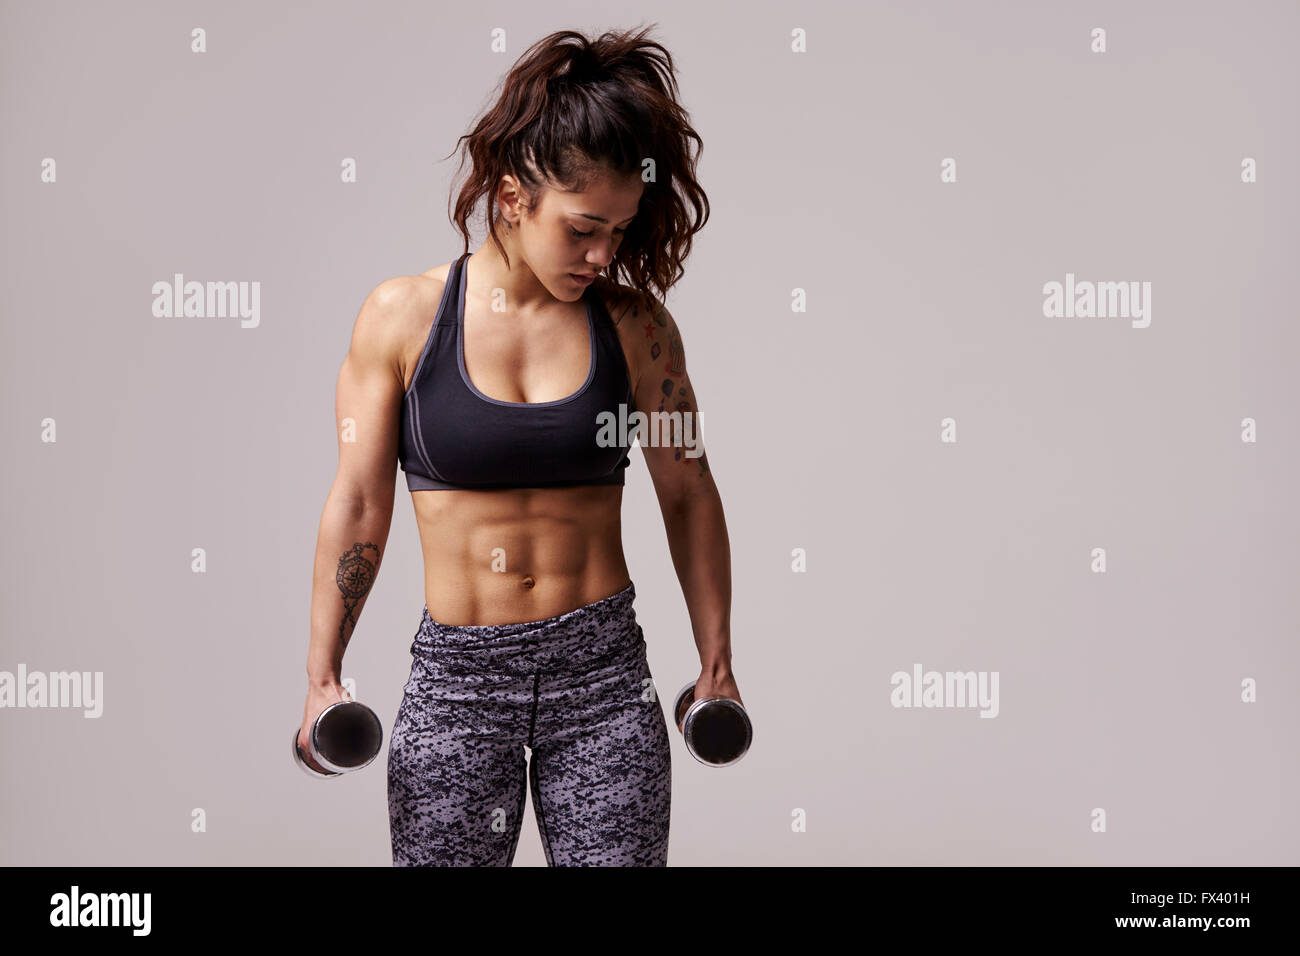 Muscular dark haired young woman working out with dumbbells - Stock Image